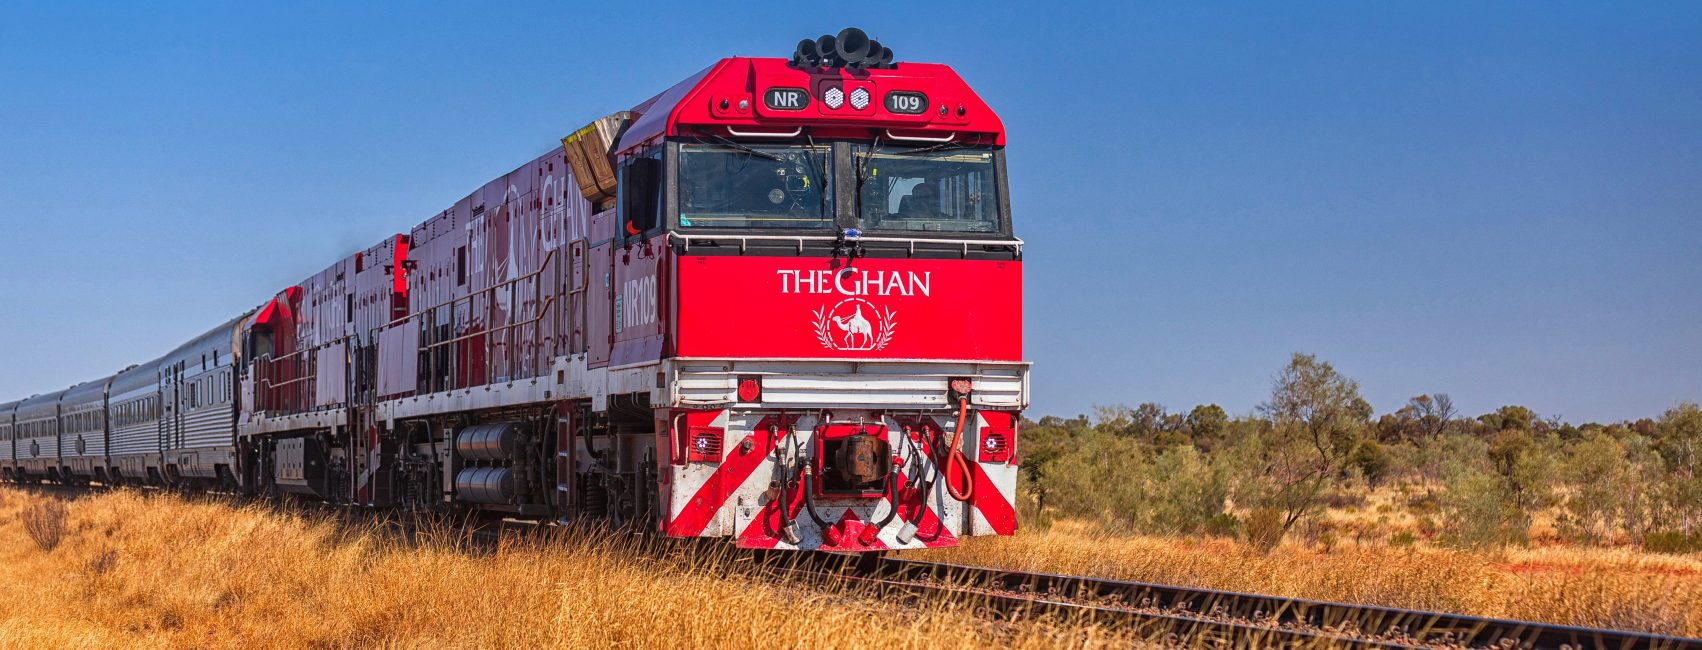 SBS COMMISSIONS 'THE GHAN'